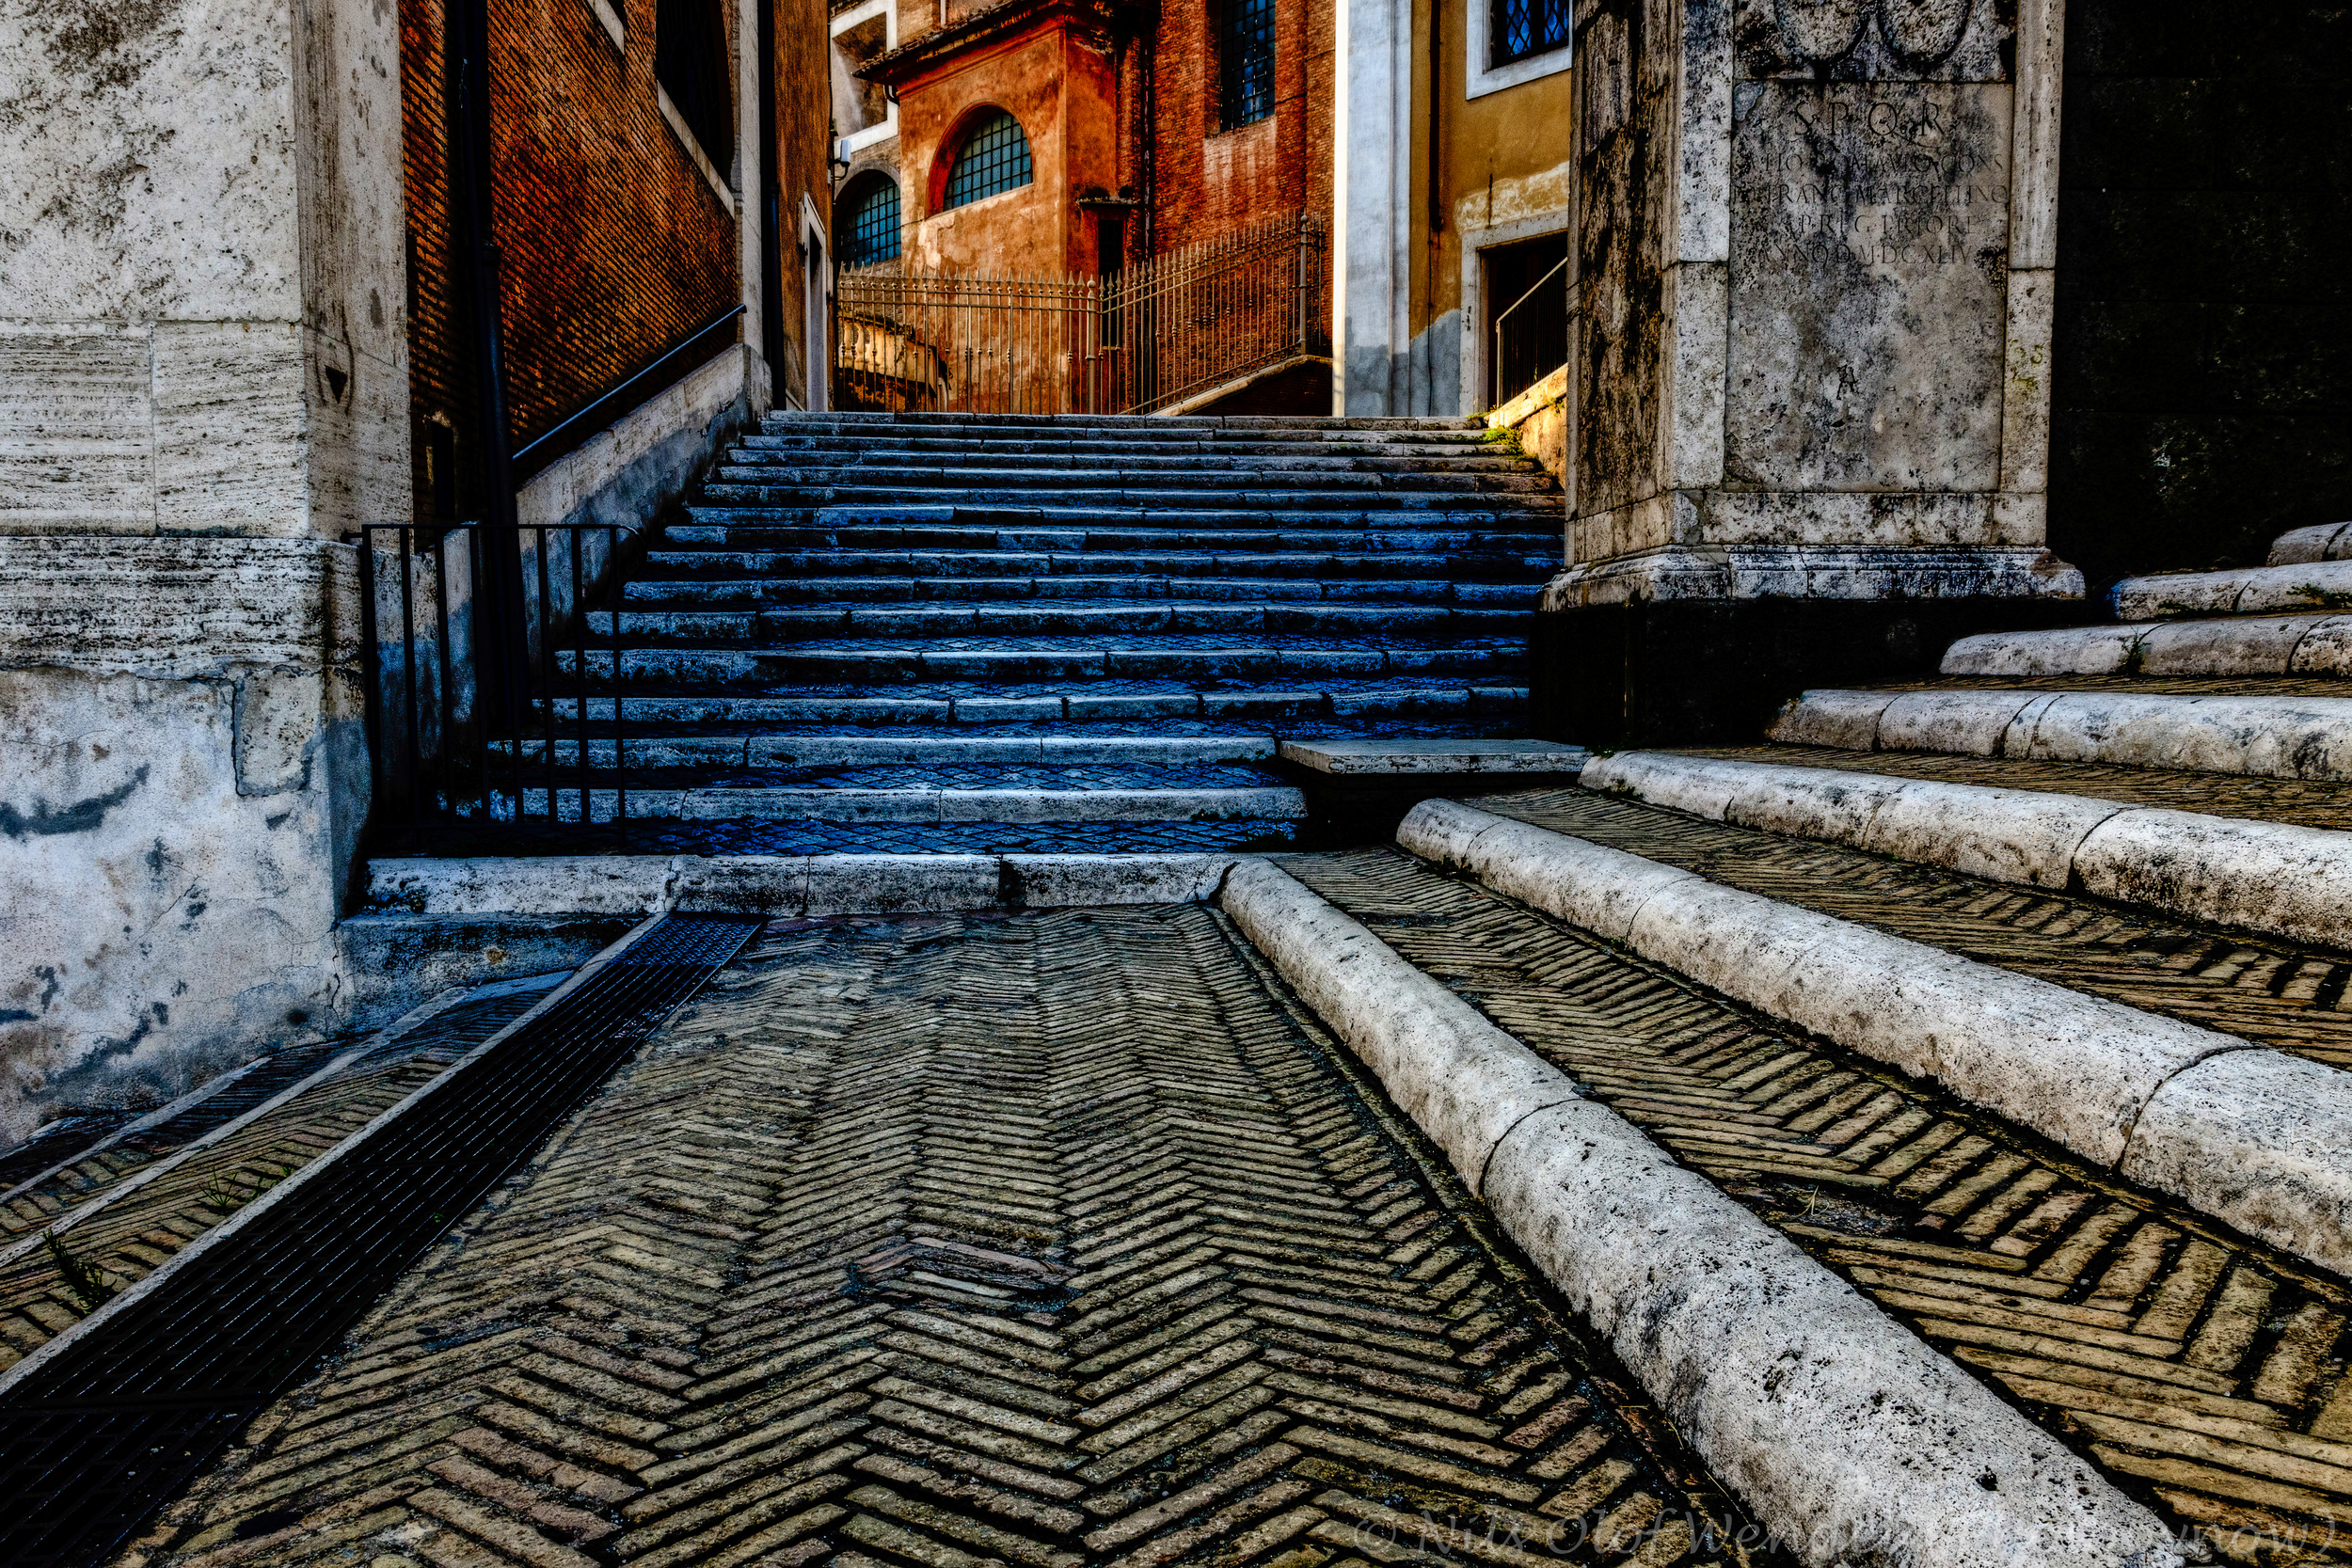 Stairs in Rome, Italy.